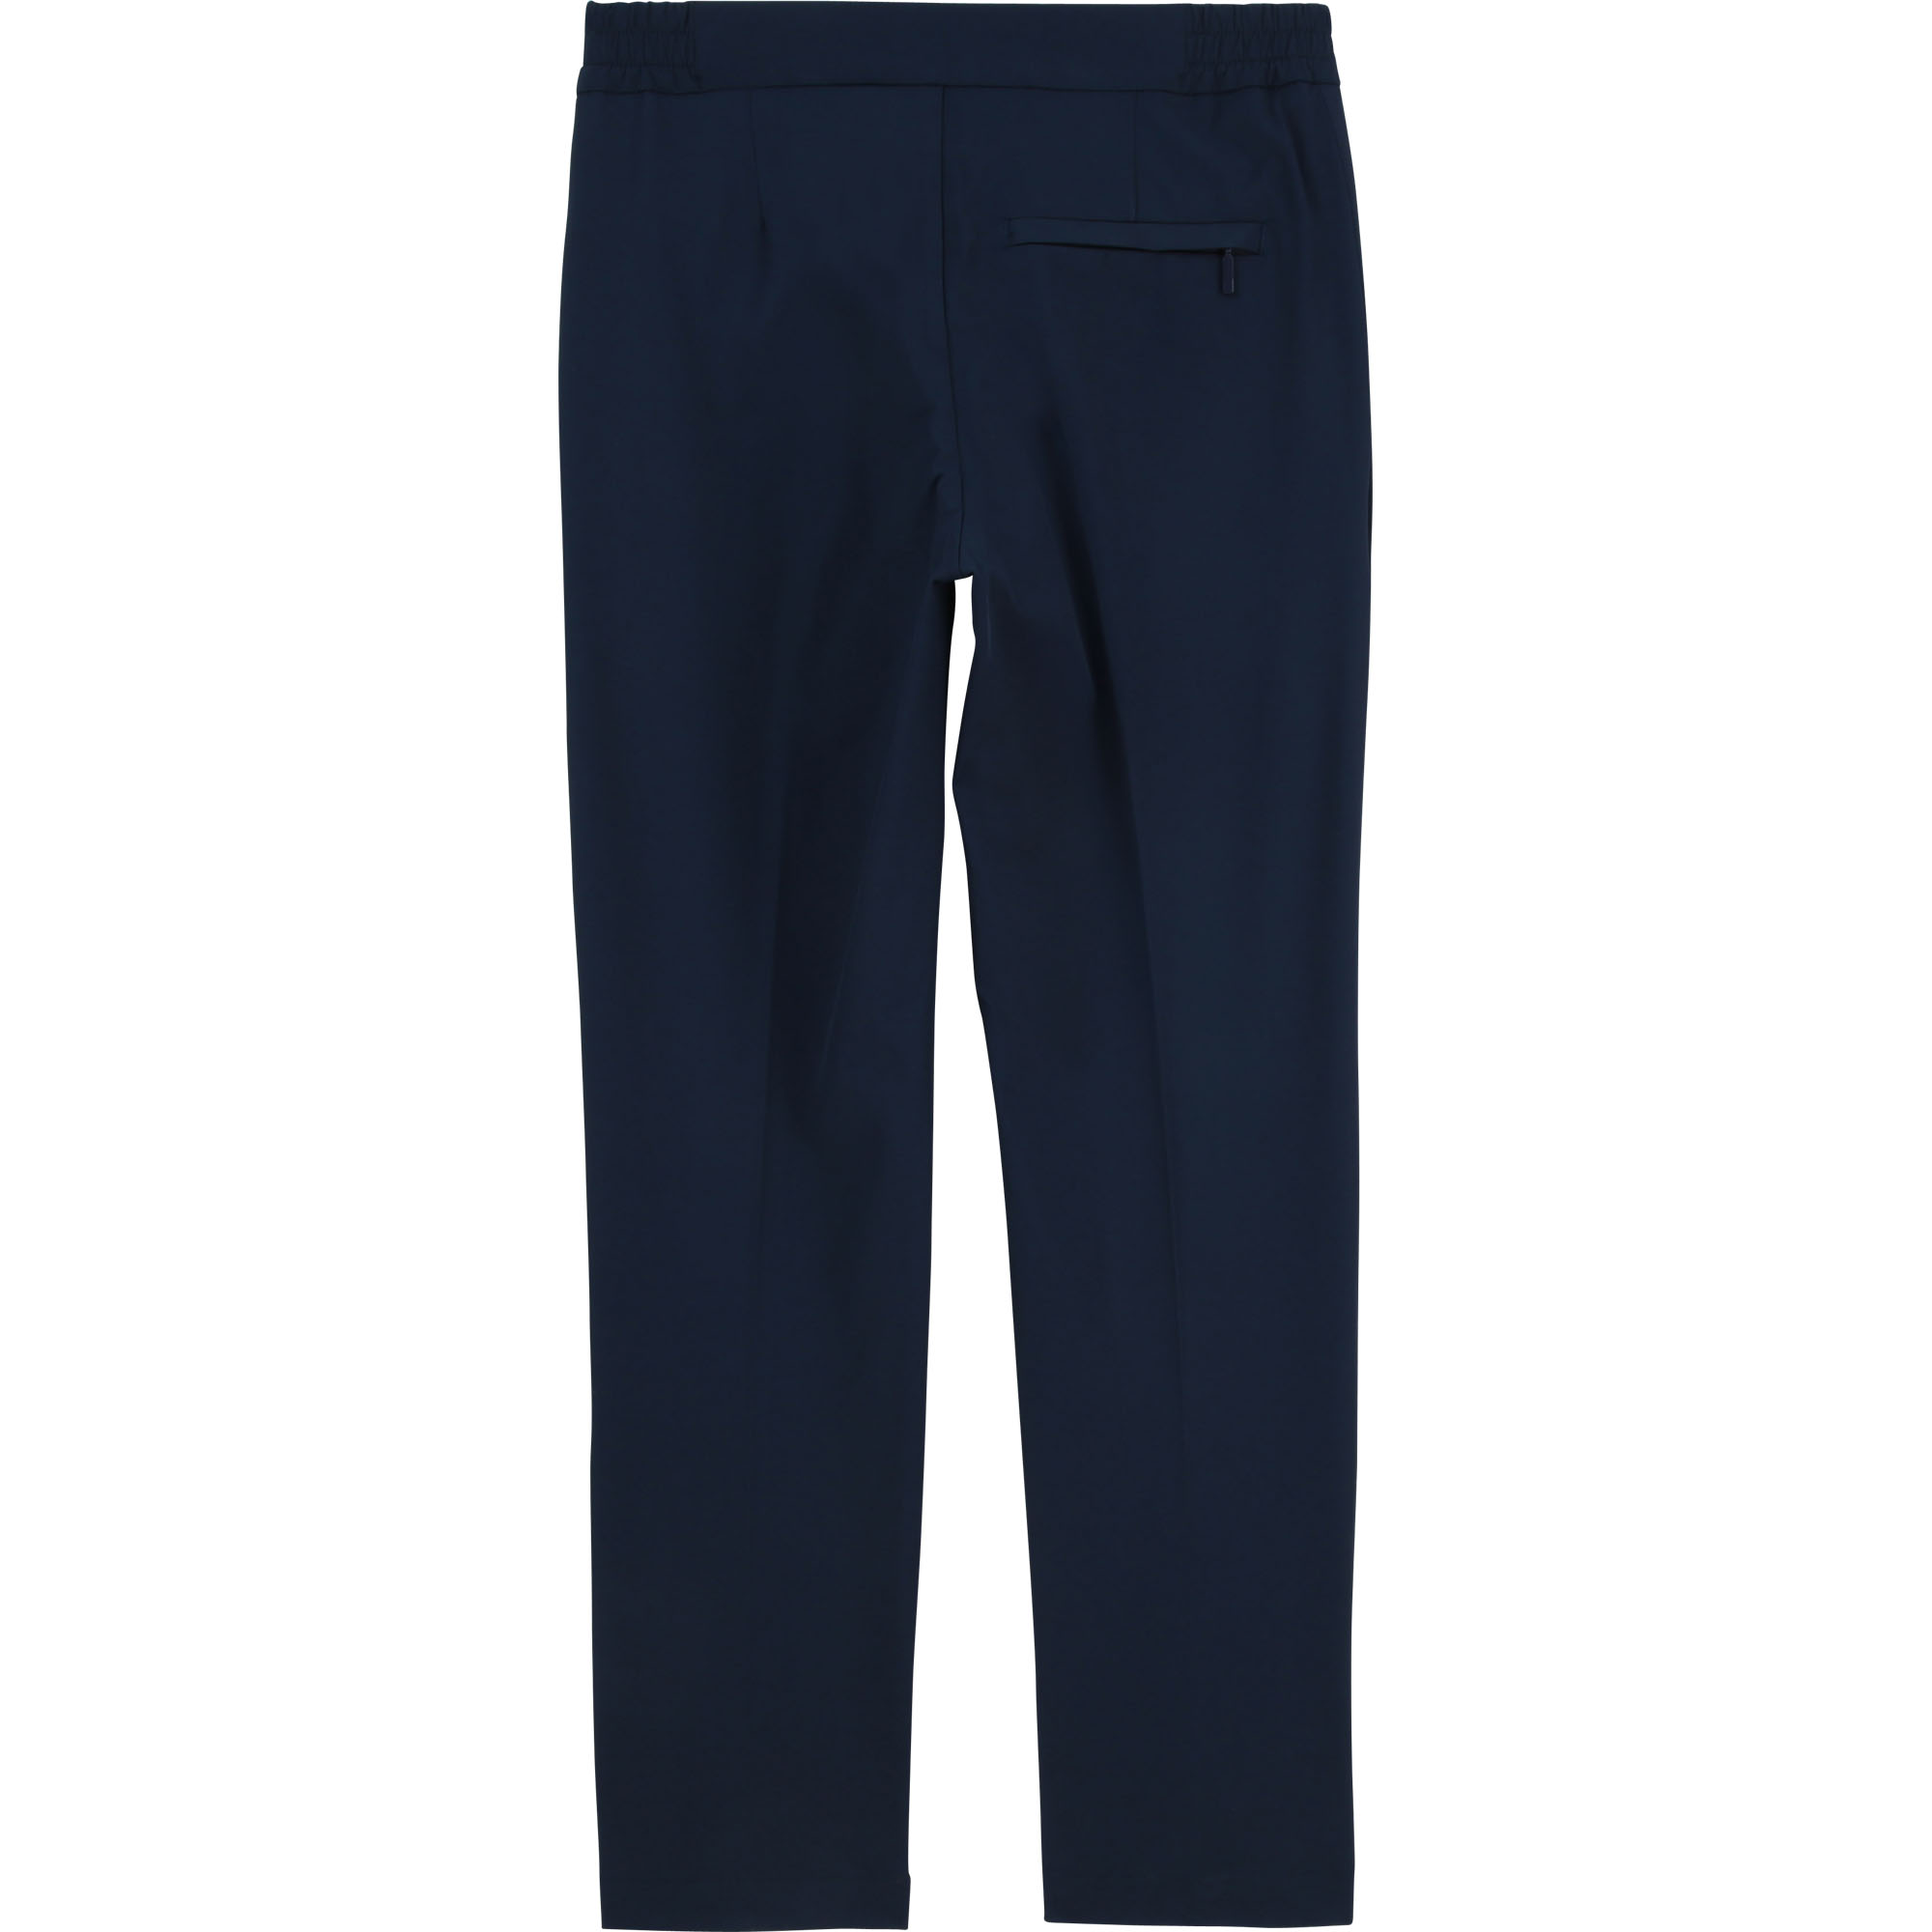 Twill suit pants BOSS for BOY